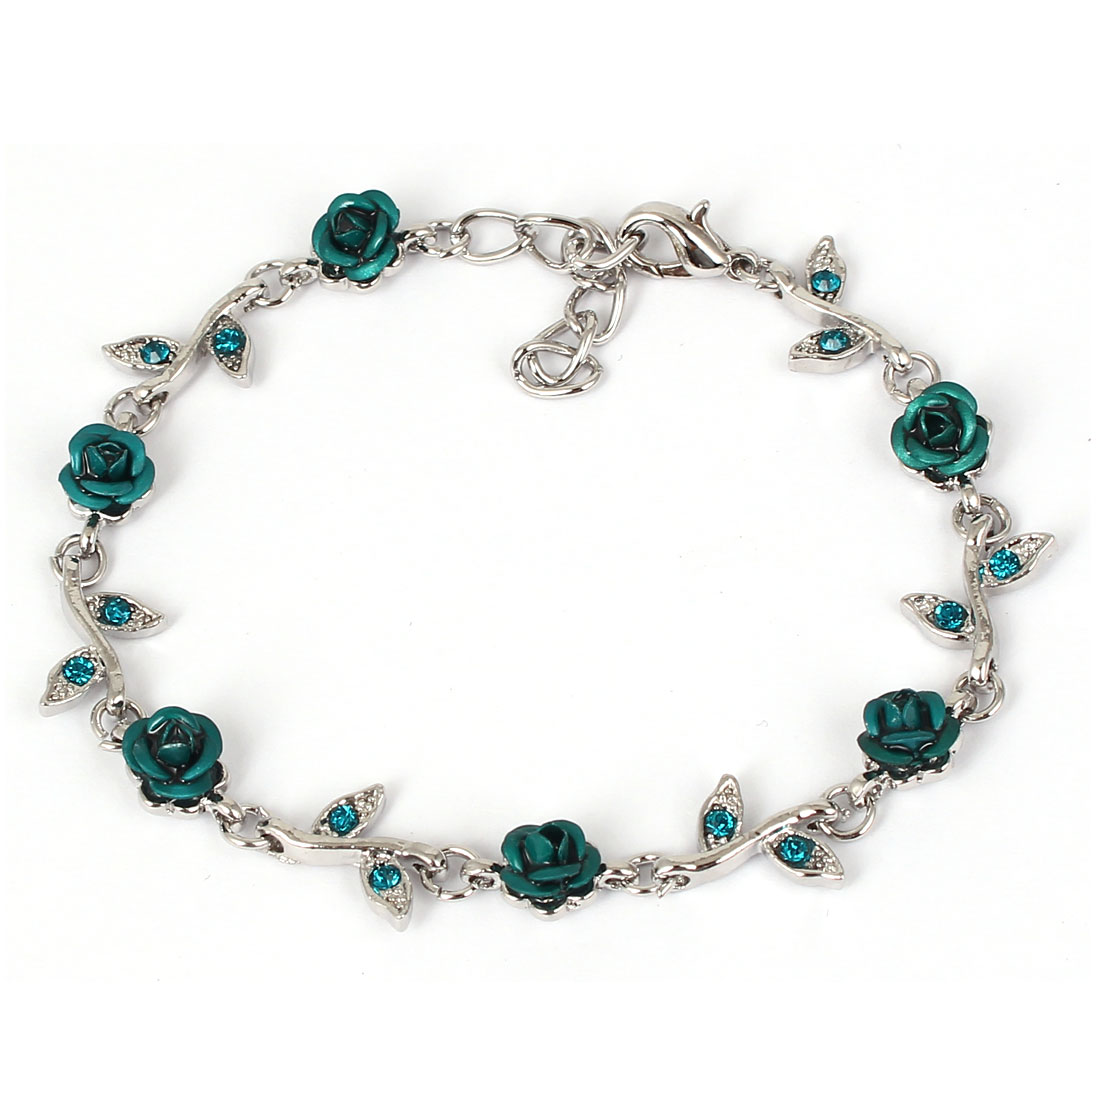 Lady Fashion Jewelry Rose Flower Crystal Decor Bracelet Silver Tone Teal Green